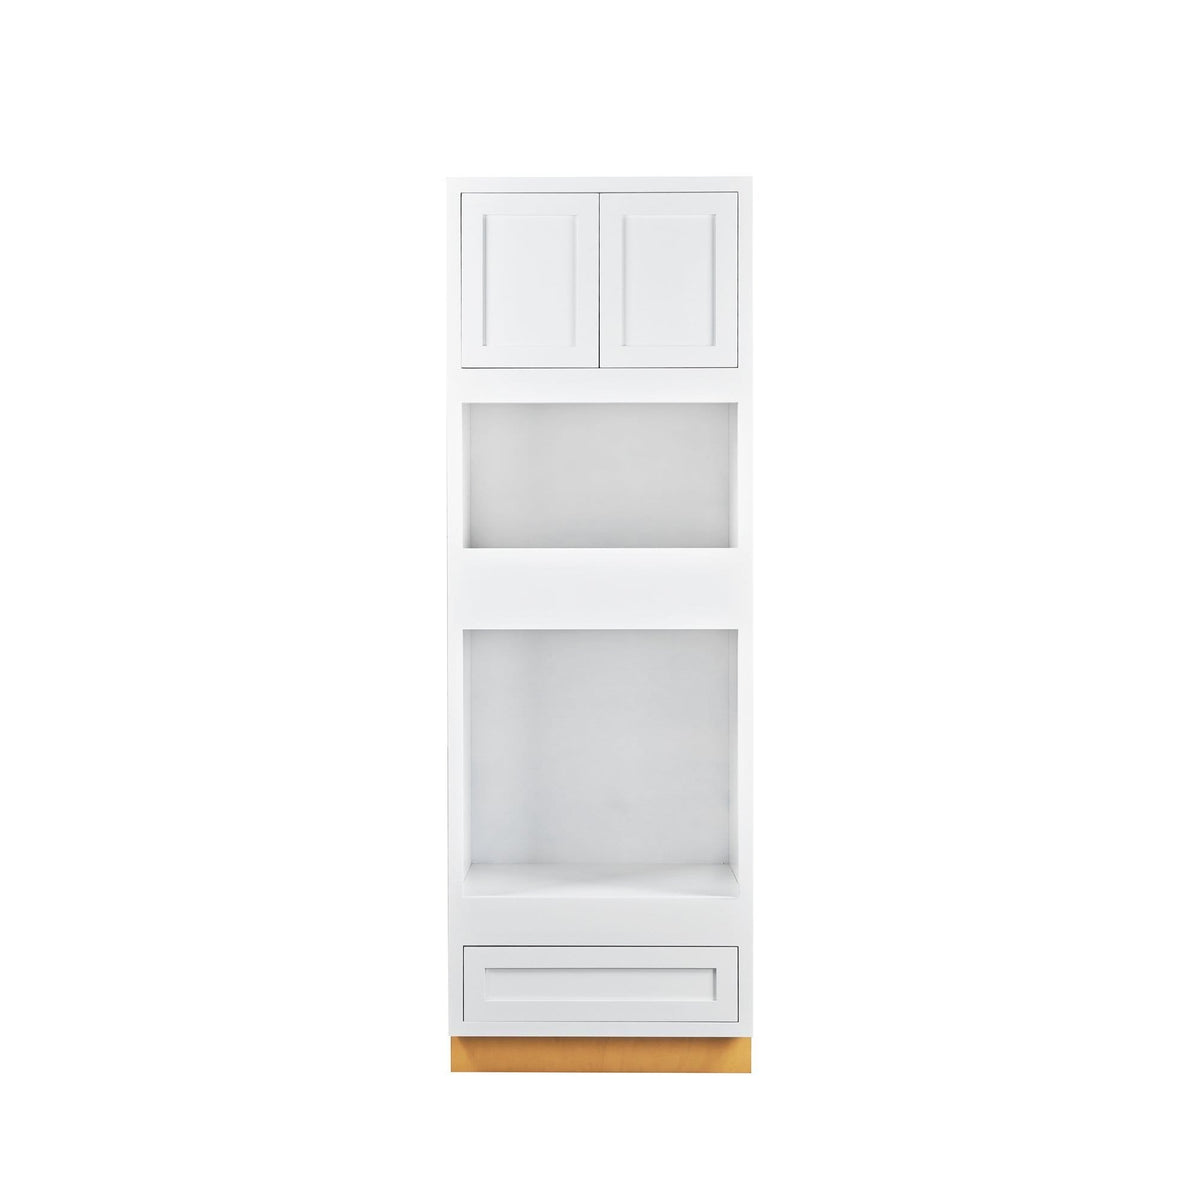 "Wall Oven Cabinet Wall Oven Snow White Inset Shaker Cabinet 31"" Wide D1OC3184 Inset Kitchen Cabinets"